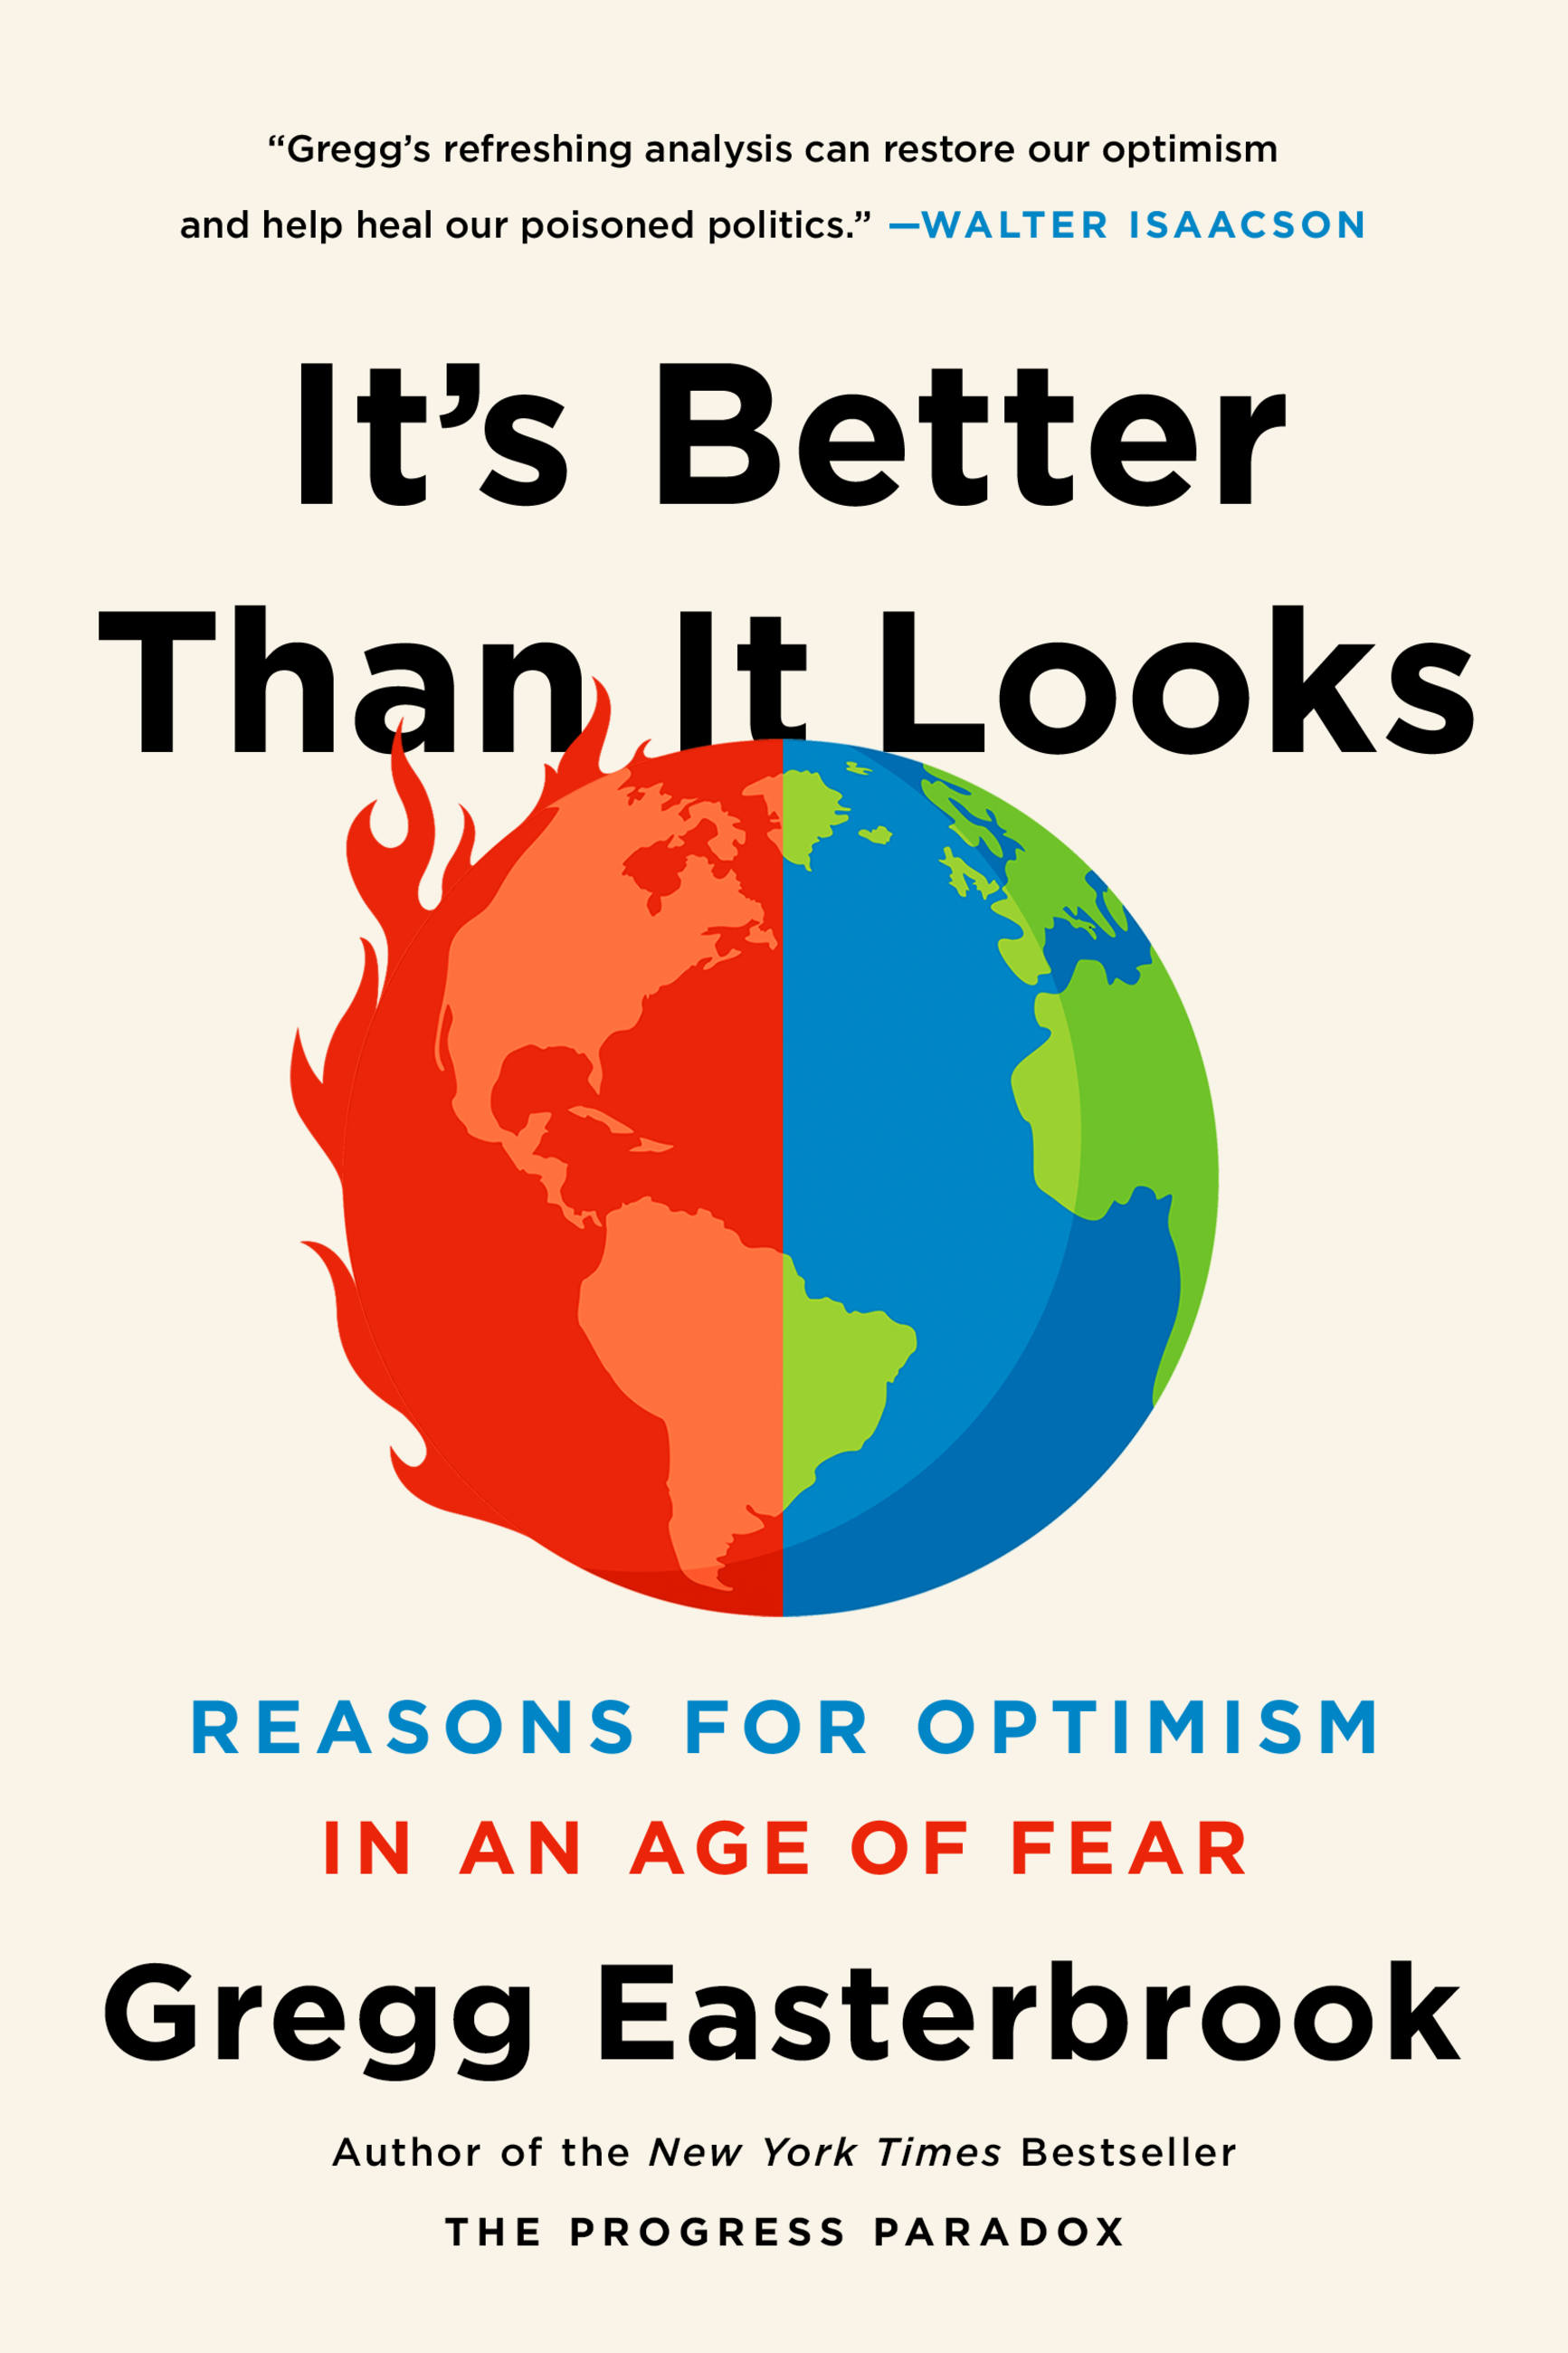 It's Better Than It Looks Reasons for Optimism in an Age of Fear